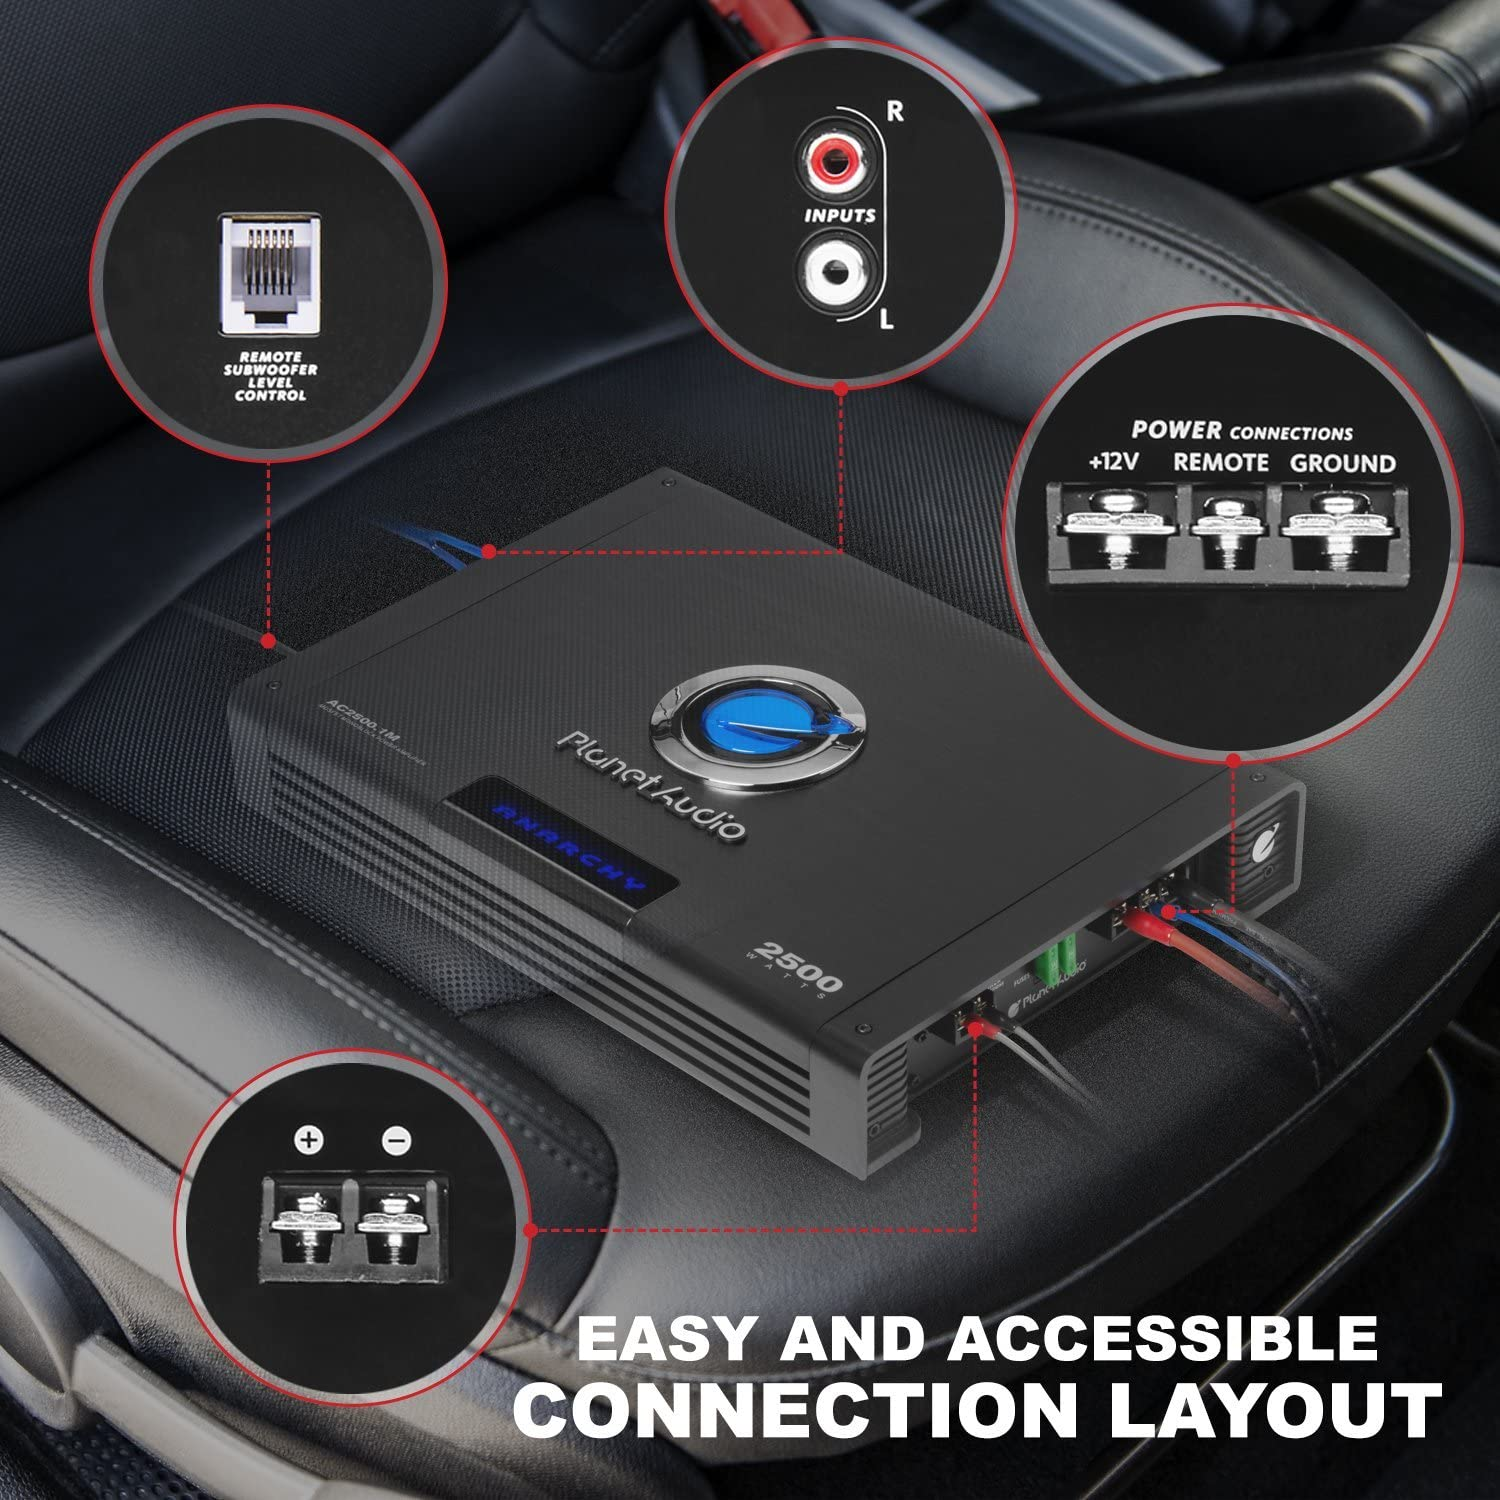 Mosfet Power Supply Remote Subwoofer Control 2//4 Ohm Stable Class A//B 2500 Watts Max Power Planet Audio AC2500.1M Monoblock Car Amplifier